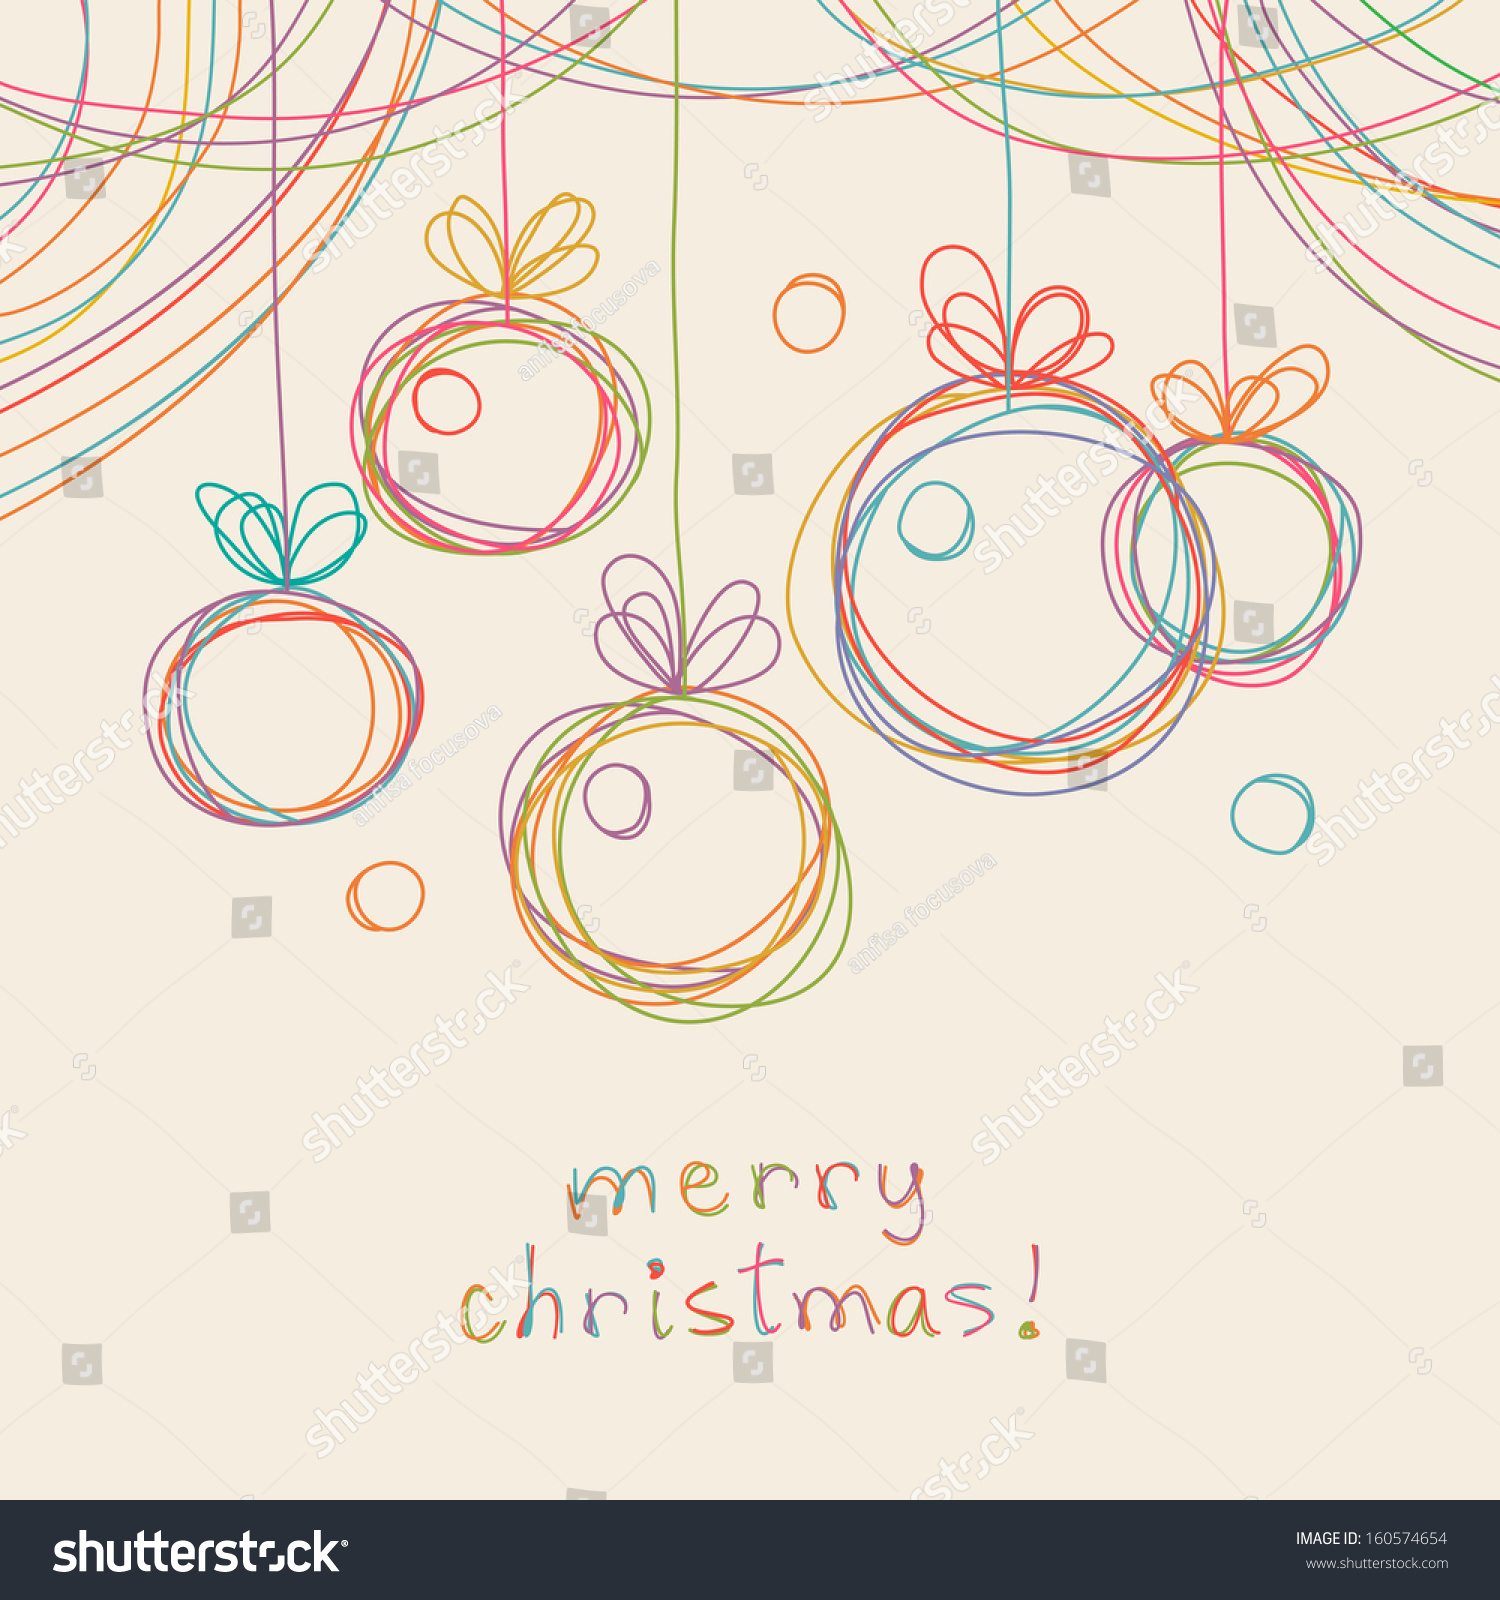 Vector Christmas Doodle Background Cute Balls In Hand Drawn Childish Sketch Style Invitation